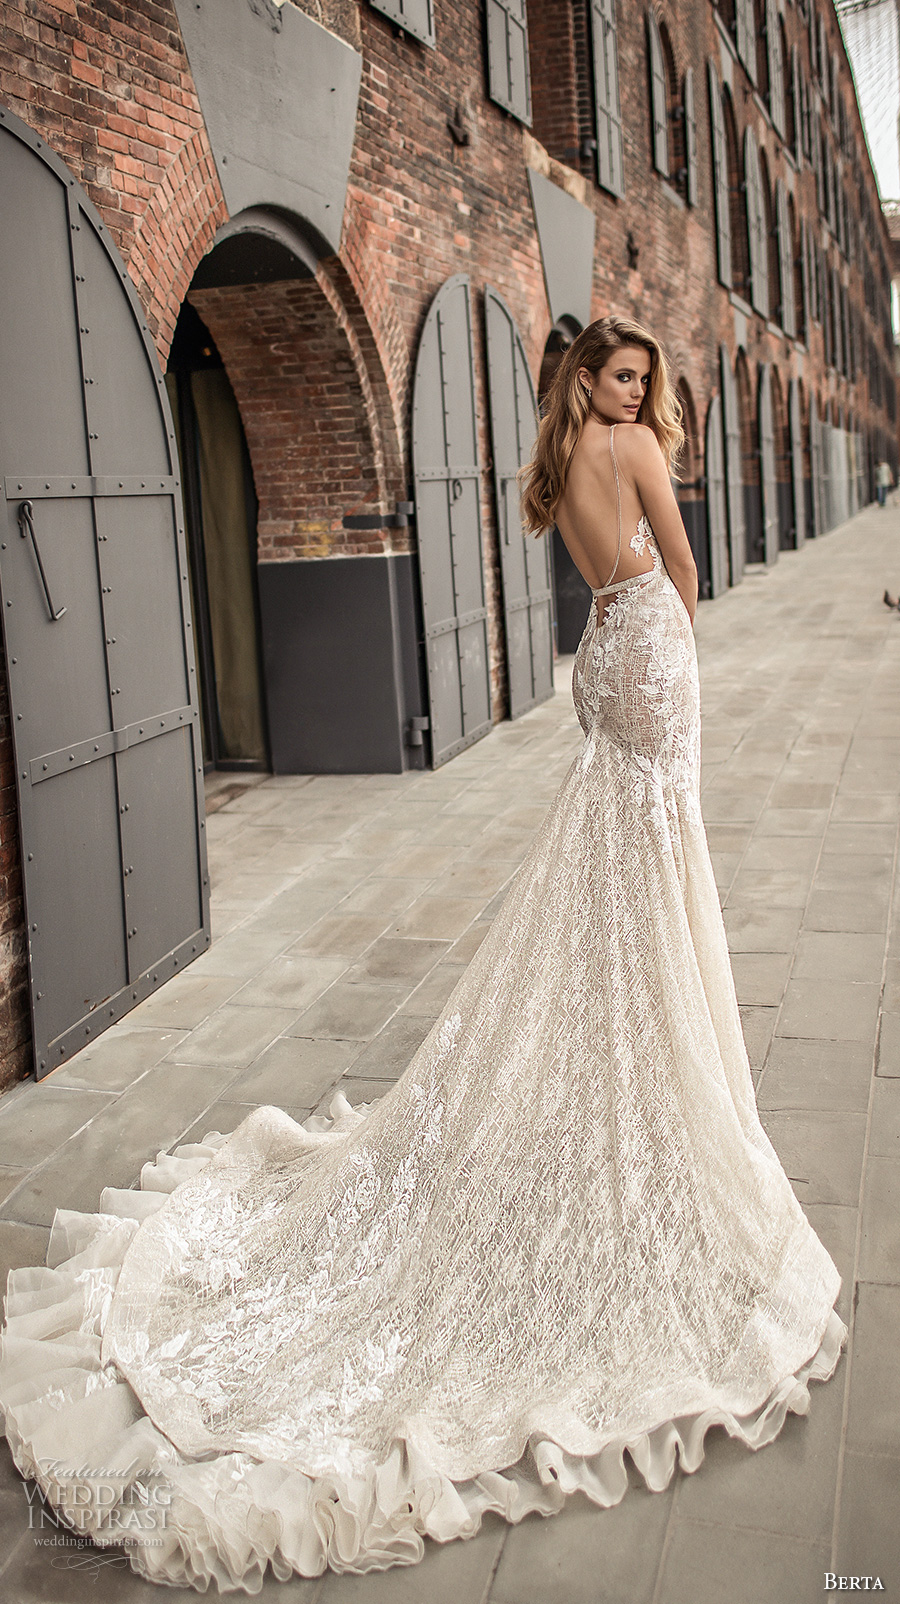 Berta spring 2018 wedding dresses campaign photos for Where to buy berta wedding dresses